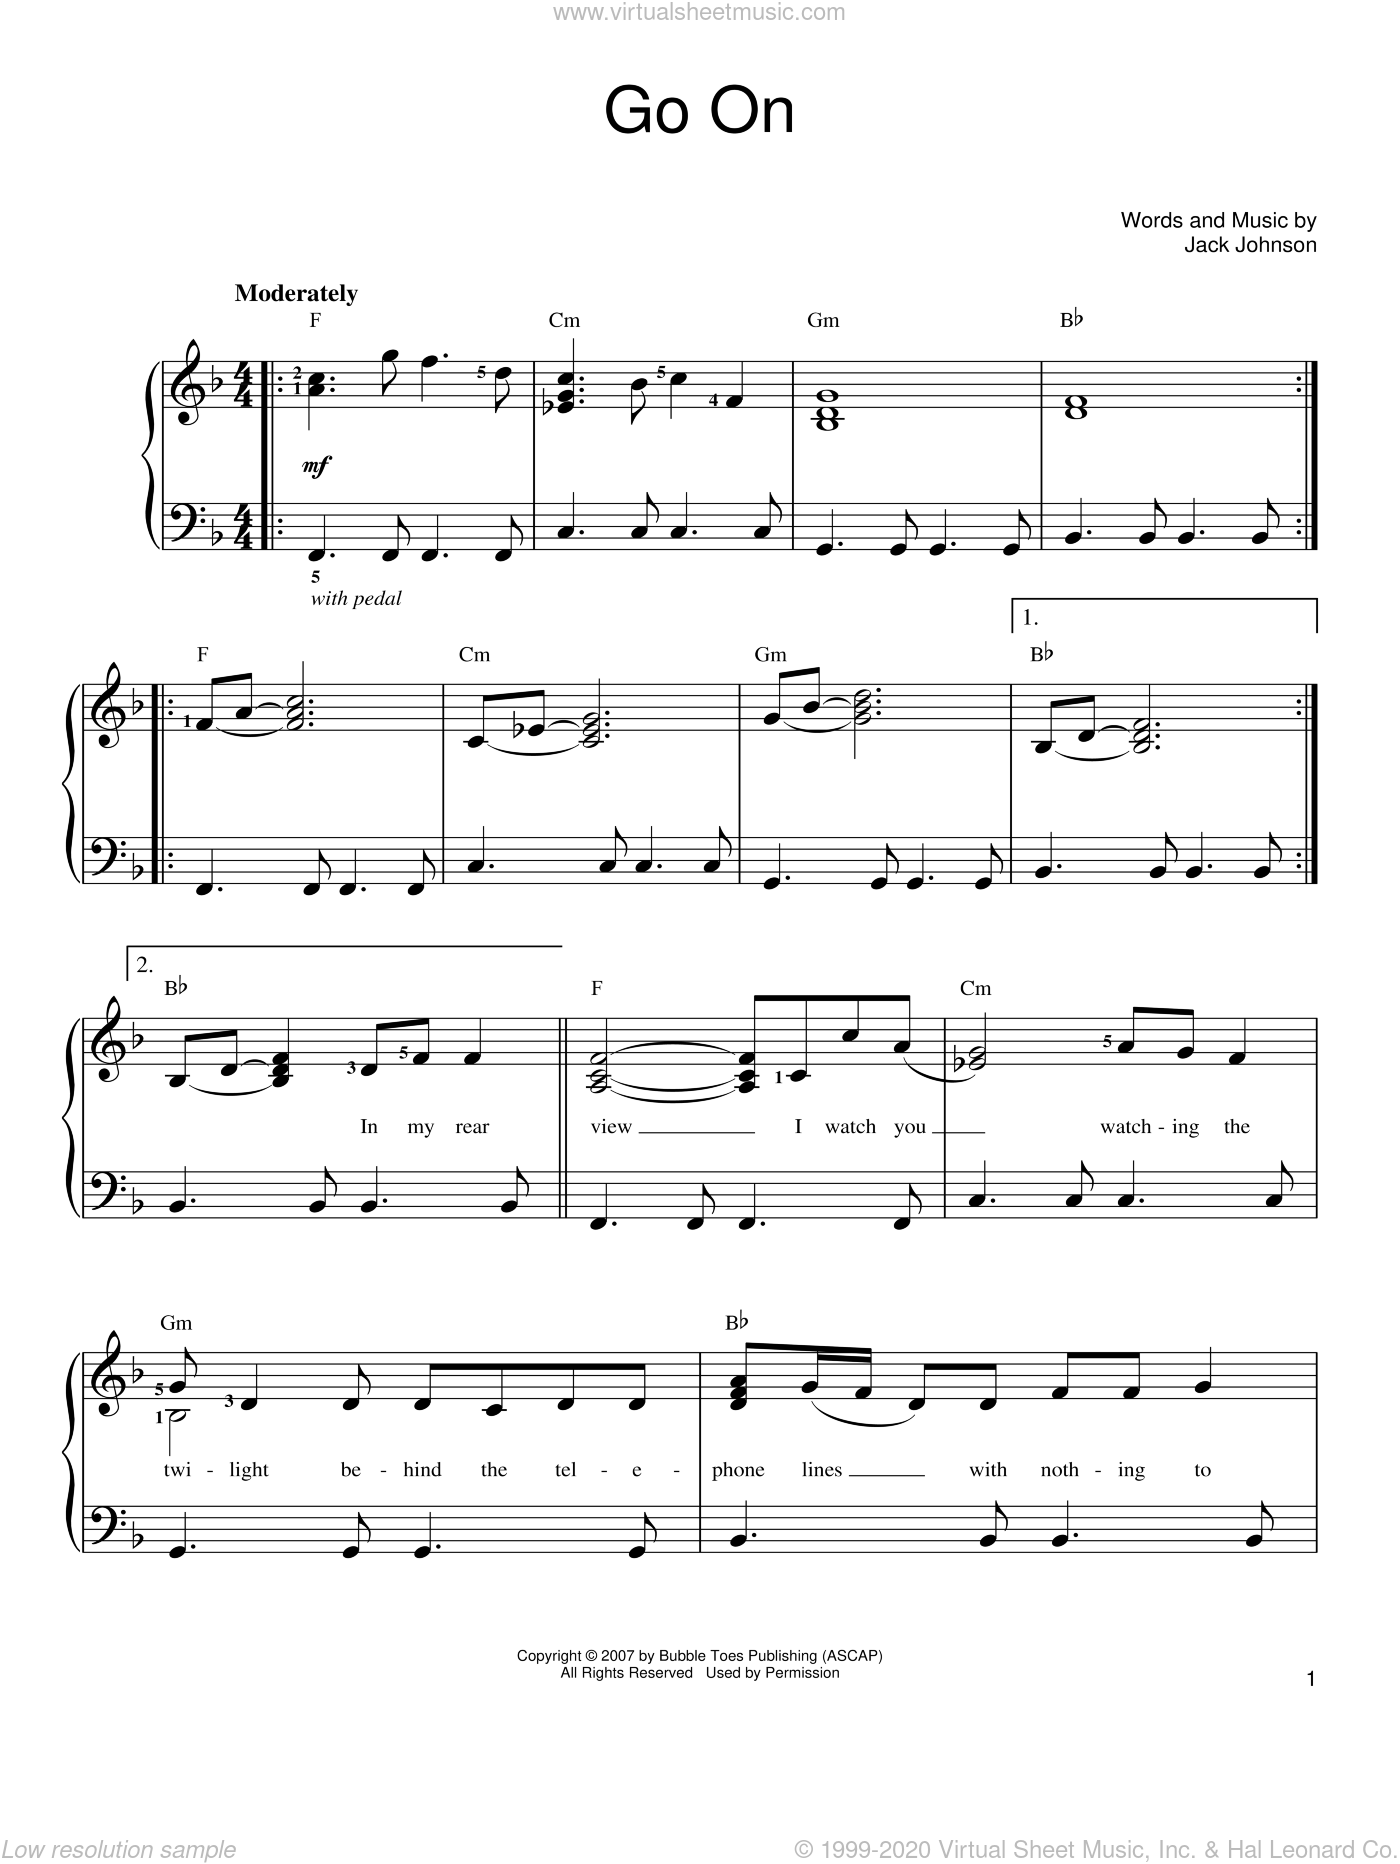 Go On sheet music for piano solo by Jack Johnson, easy skill level